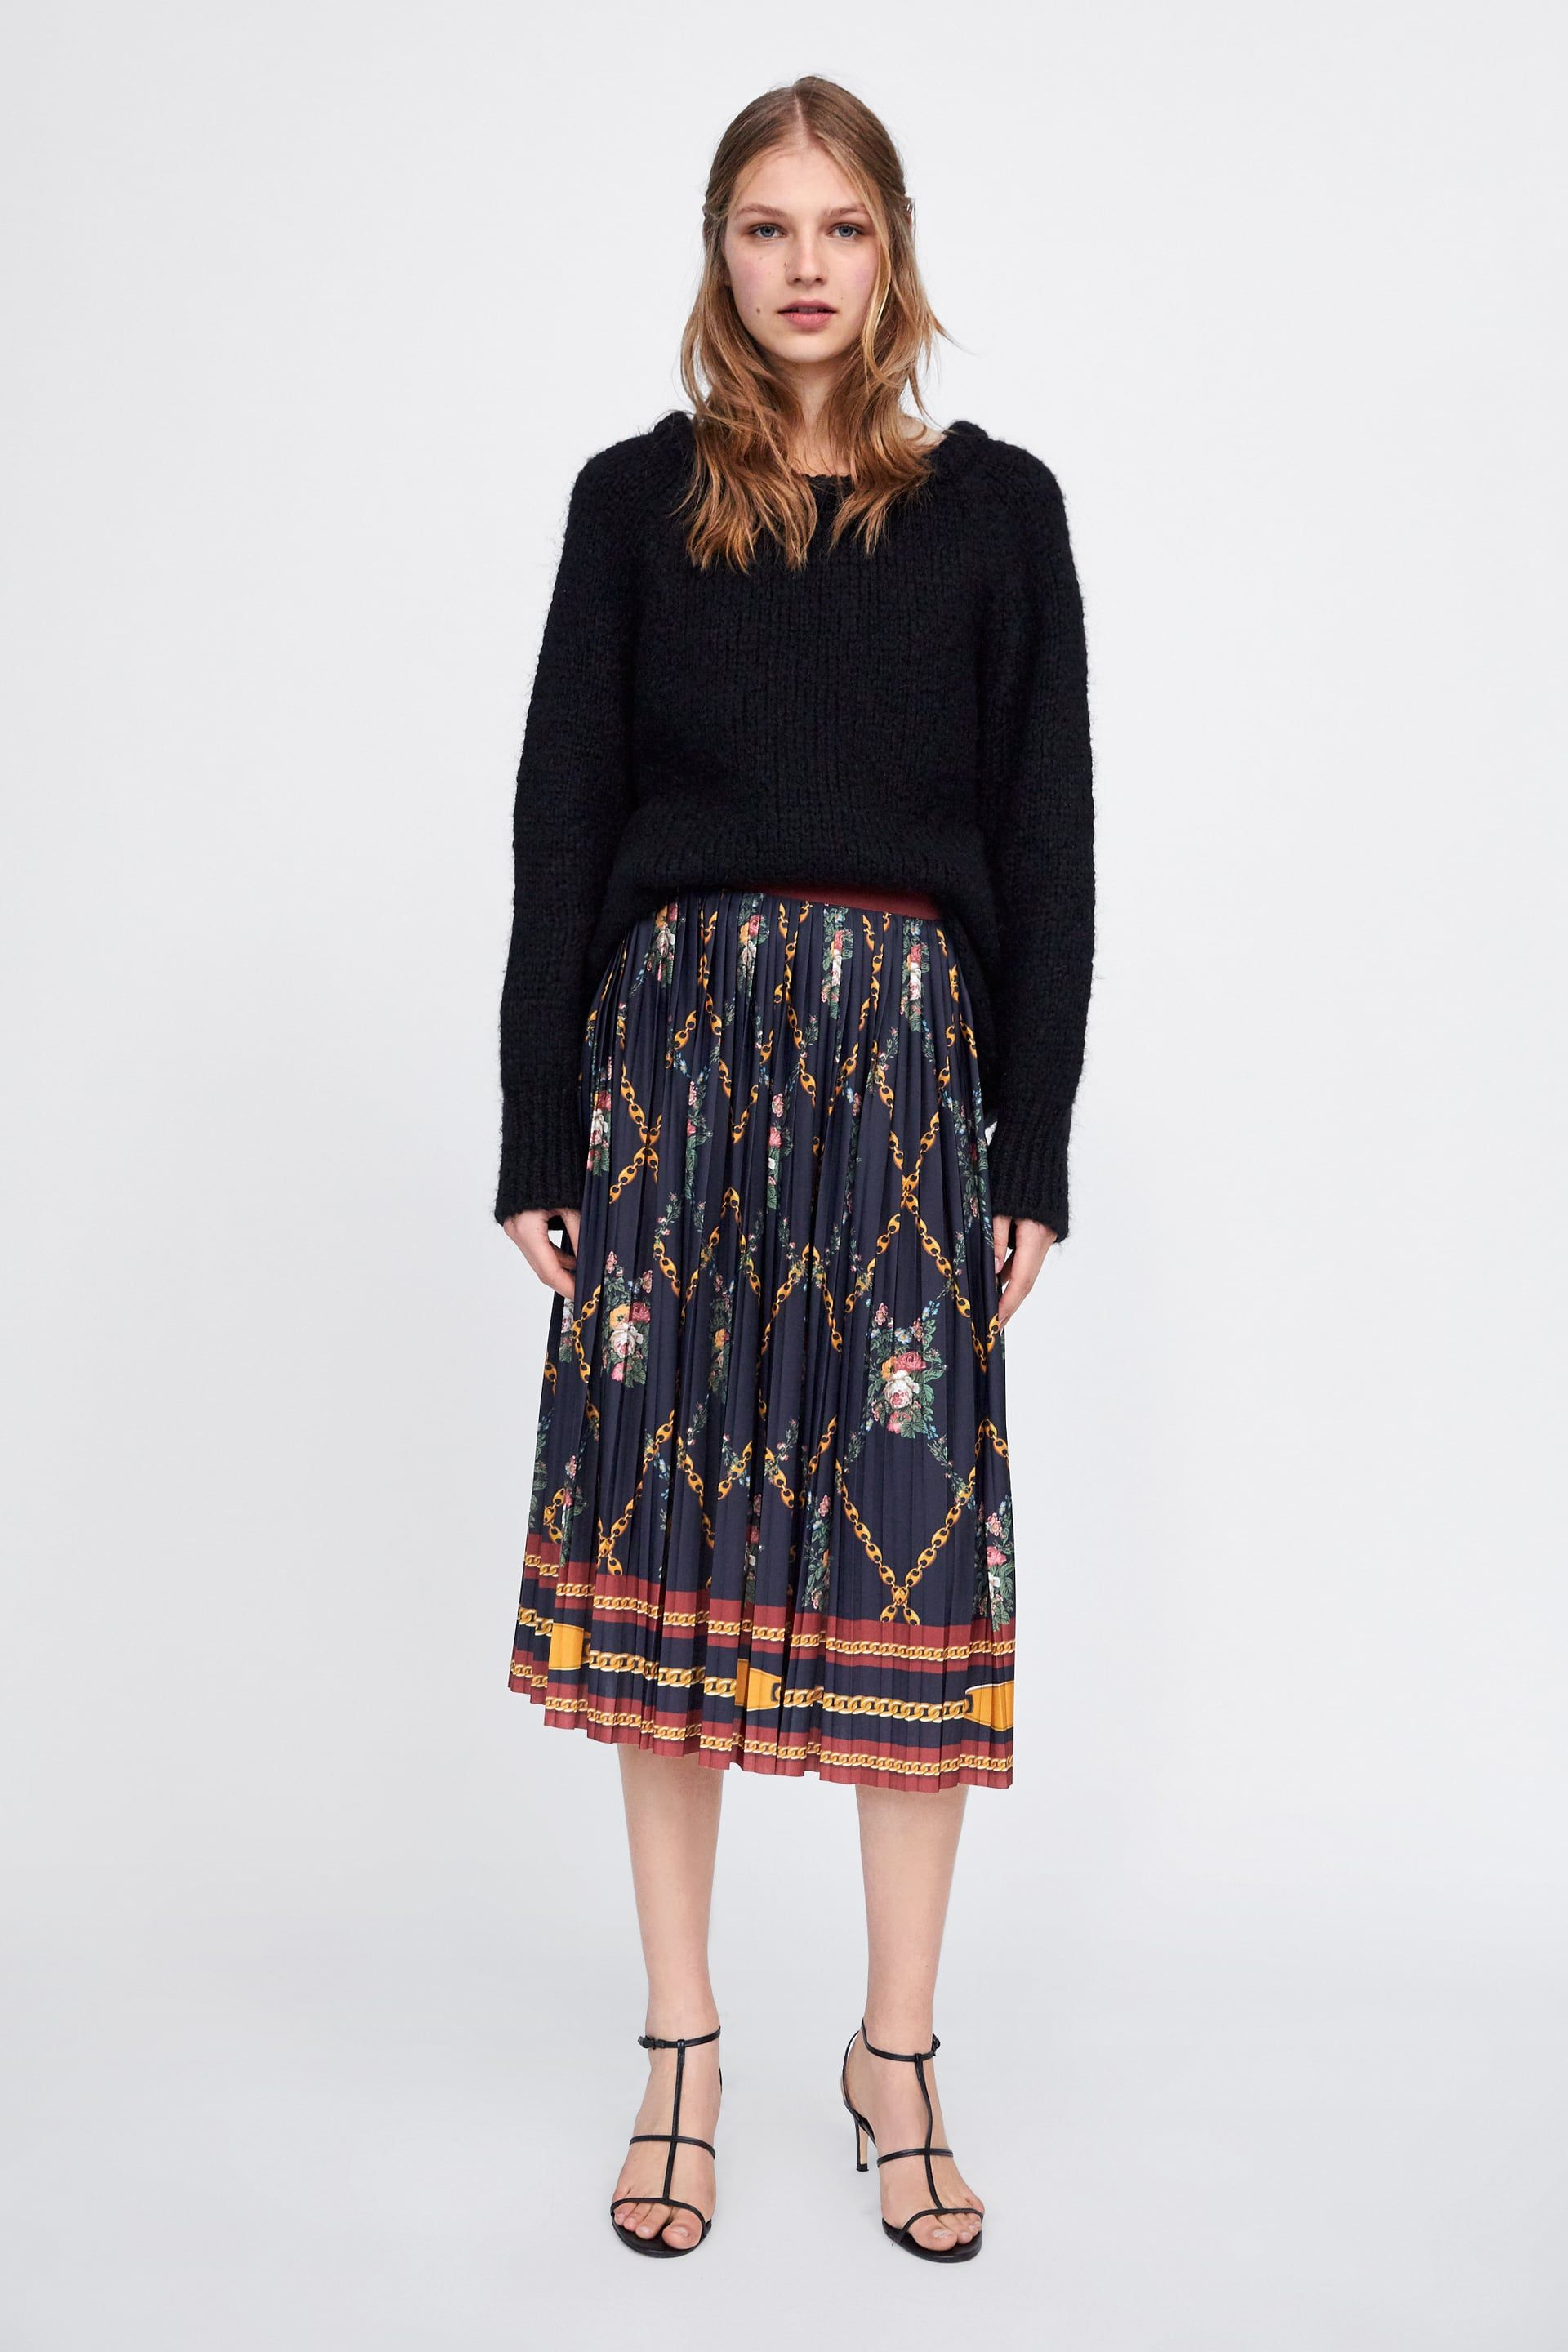 95e218ed5150 Image 1 of CHAIN PRINT PLEATED SKIRT from Zara | My Style in 2019 ...